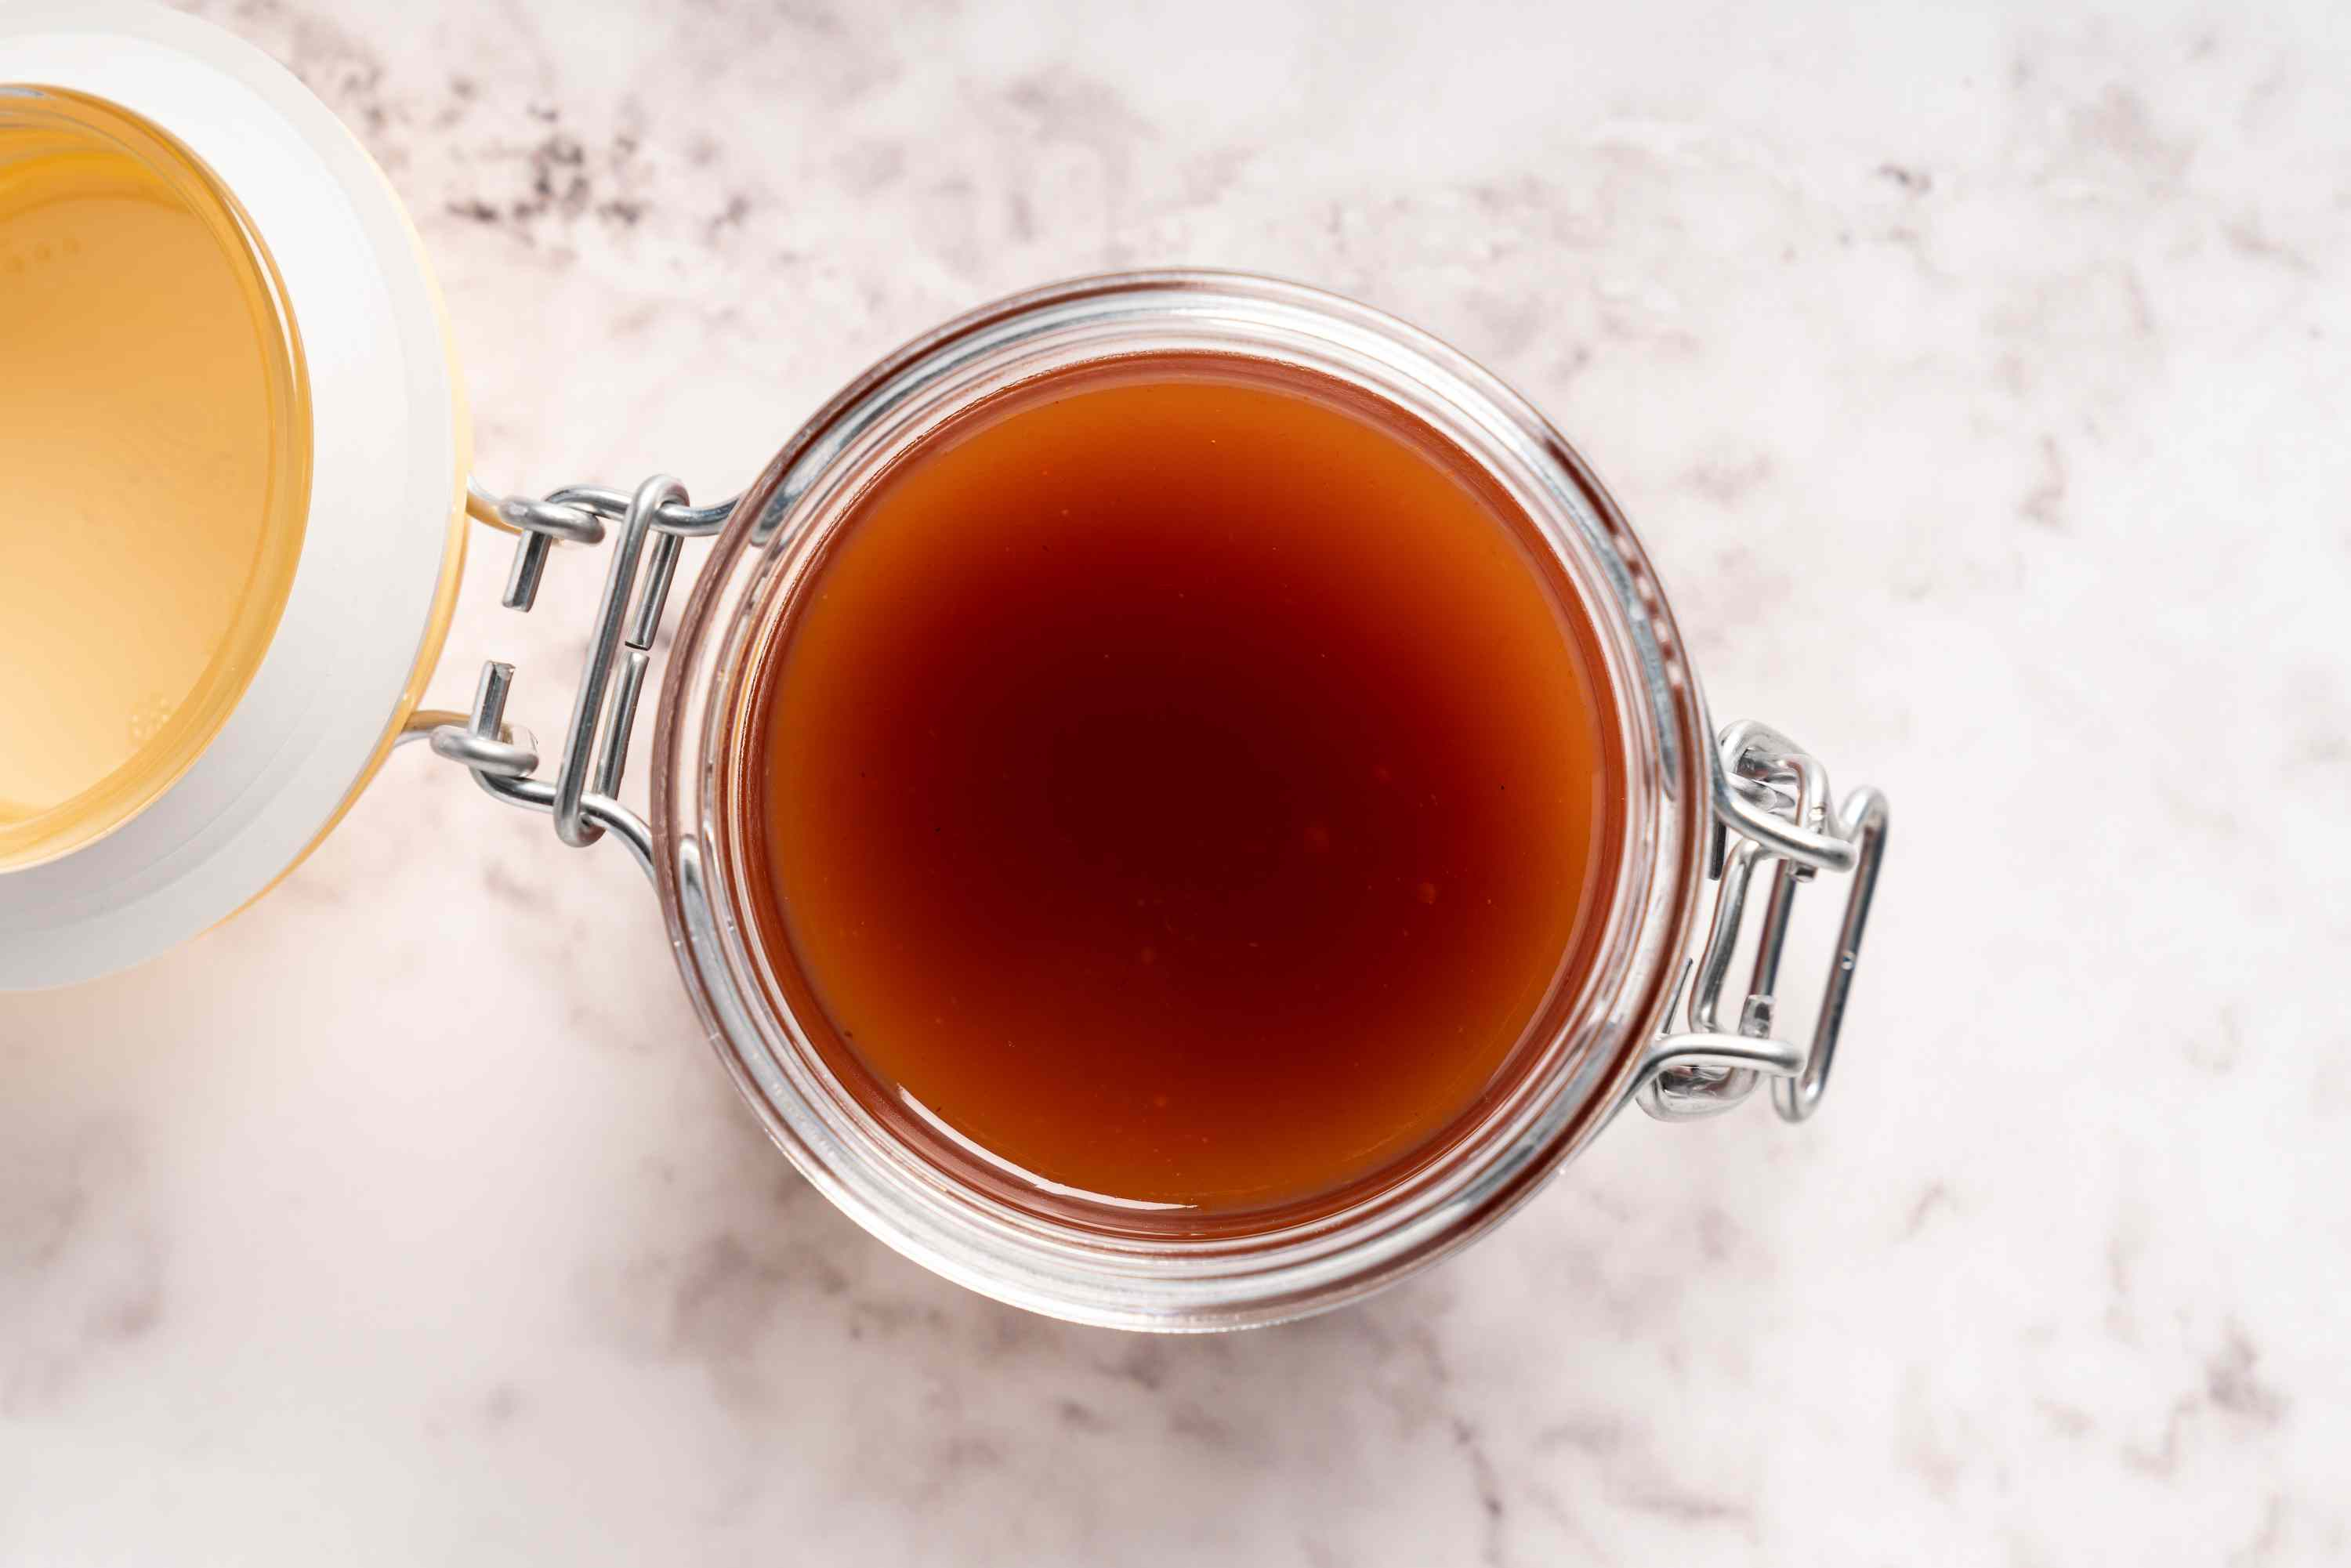 Chinese Sweet and Sour Sauce in a jar